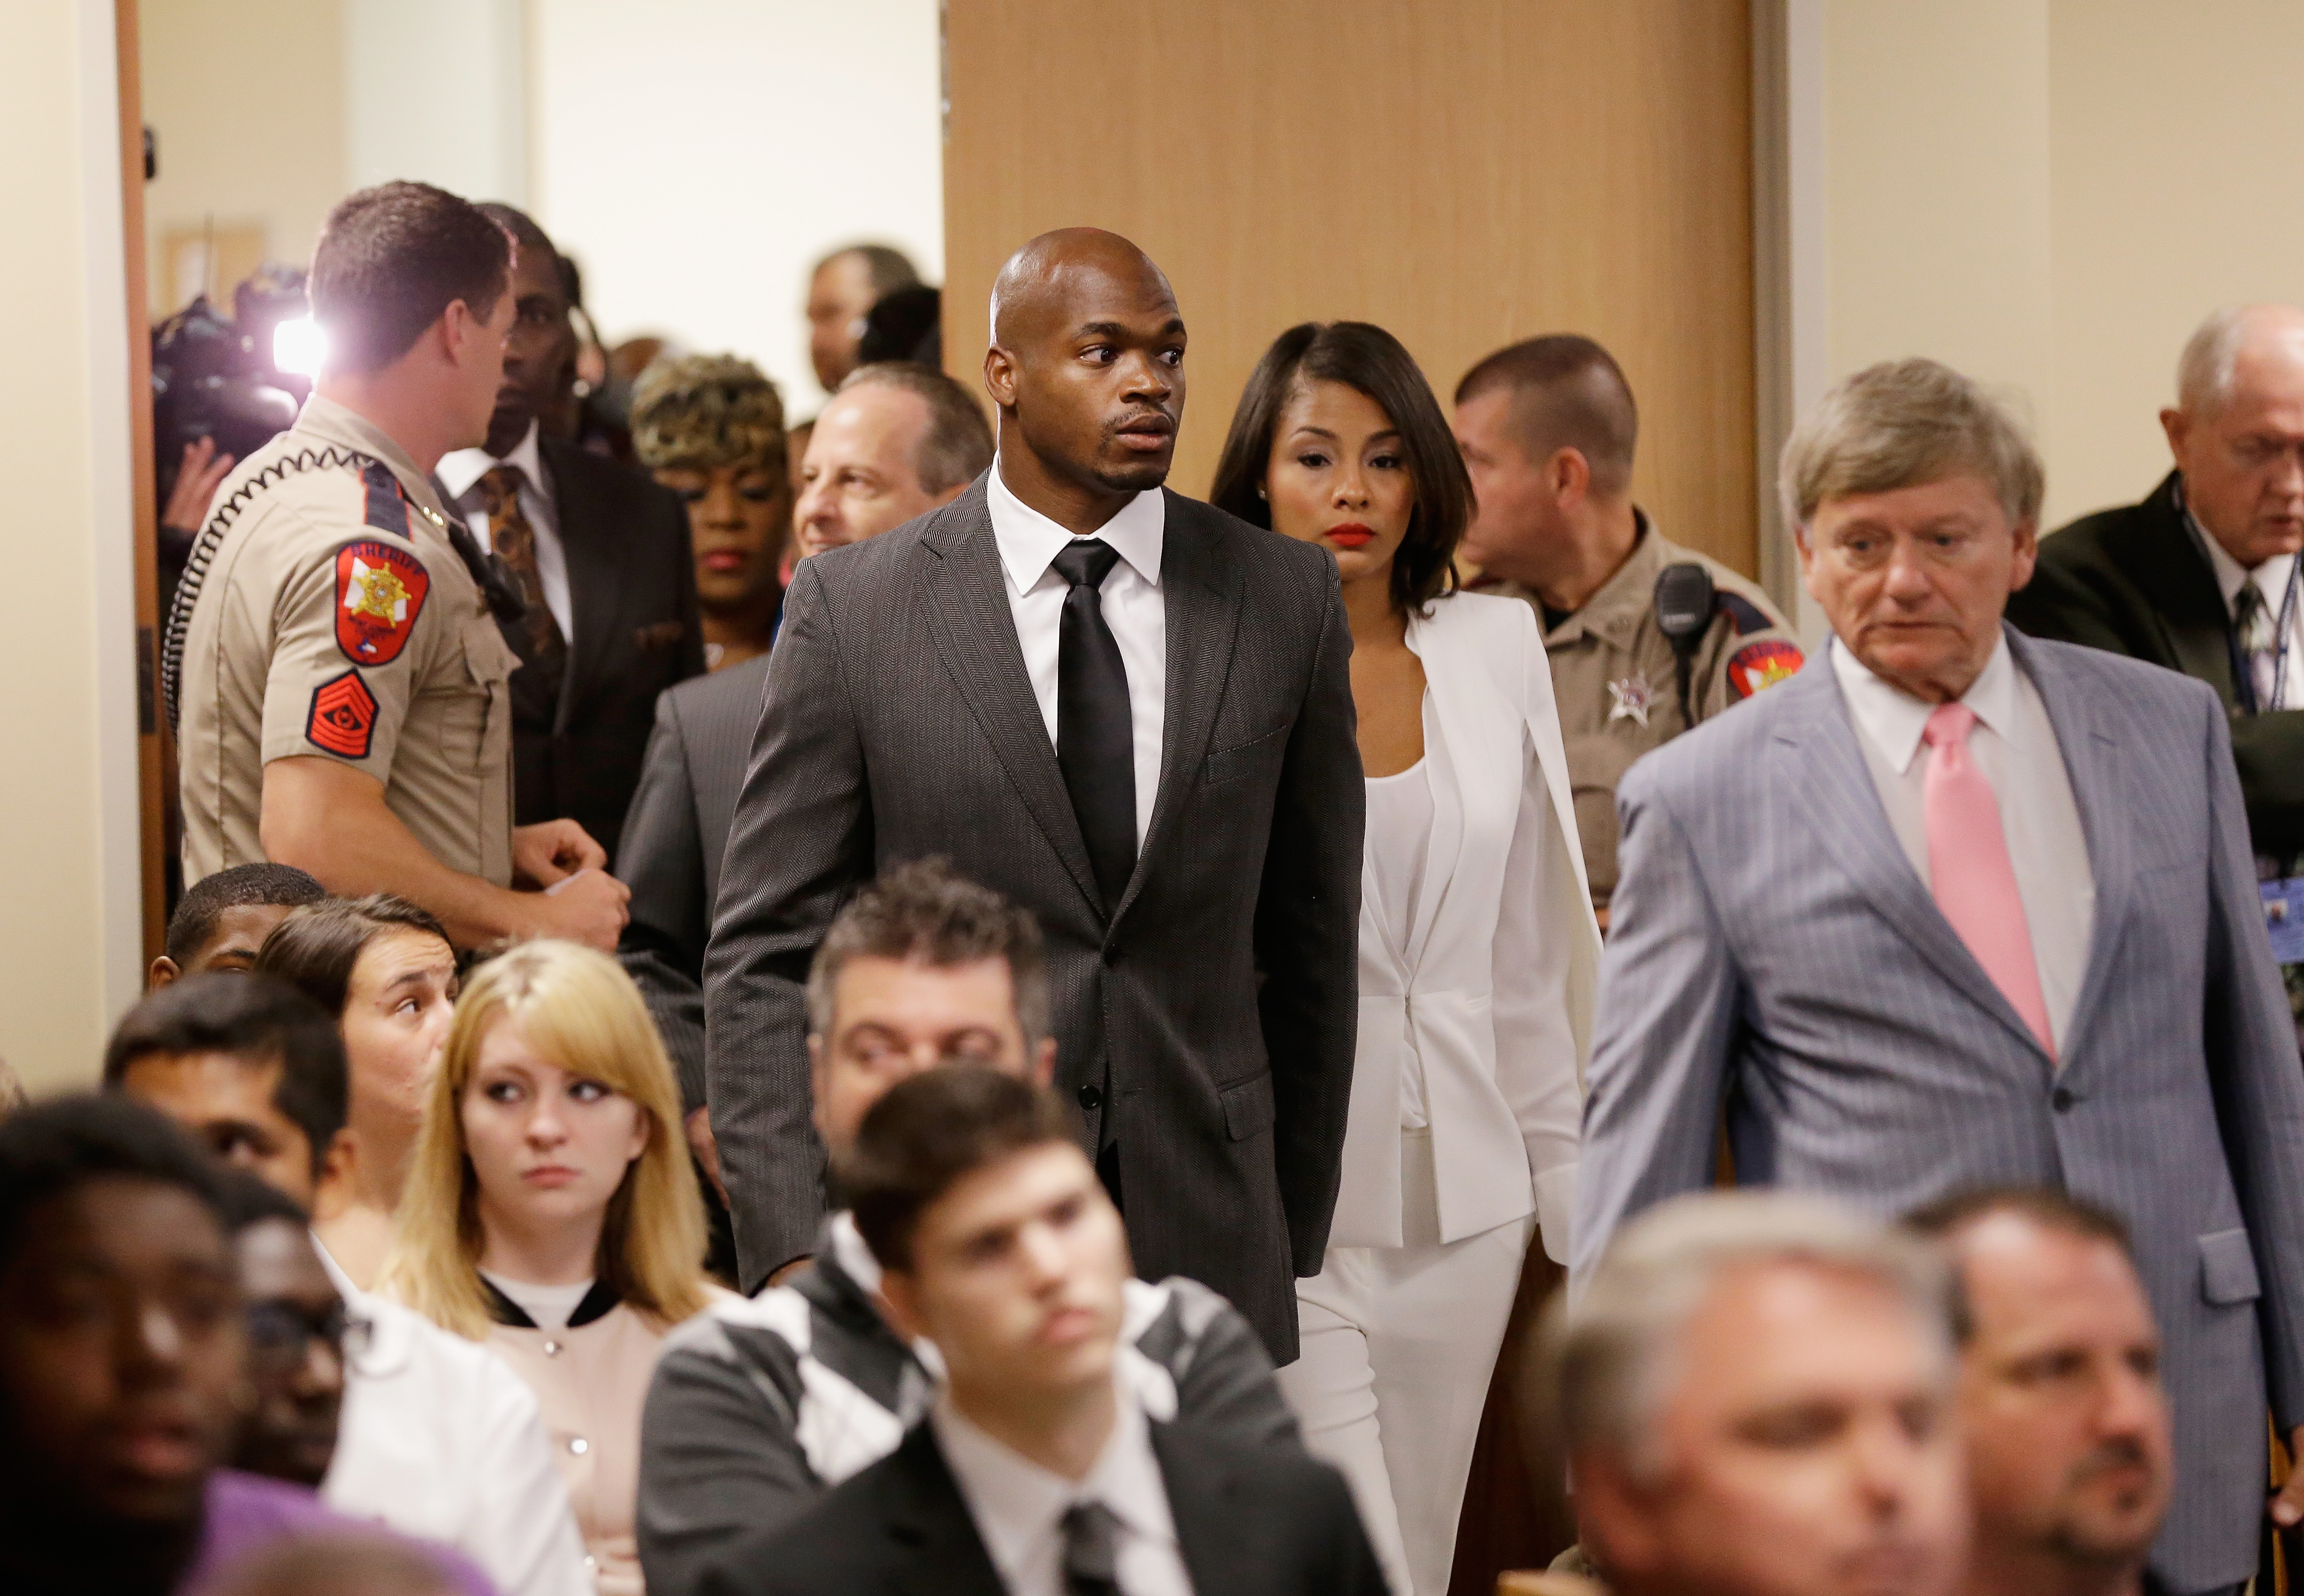 From left: NFL player Adrian Peterson of the Minnesota Vikings  enters the courtroom with his wife Ashley Brown and his attorney Rusty Hardin on October 8, 2014 in Conroe, Texas.  Petersen is facing charges of reckless or negligent injury to a child.